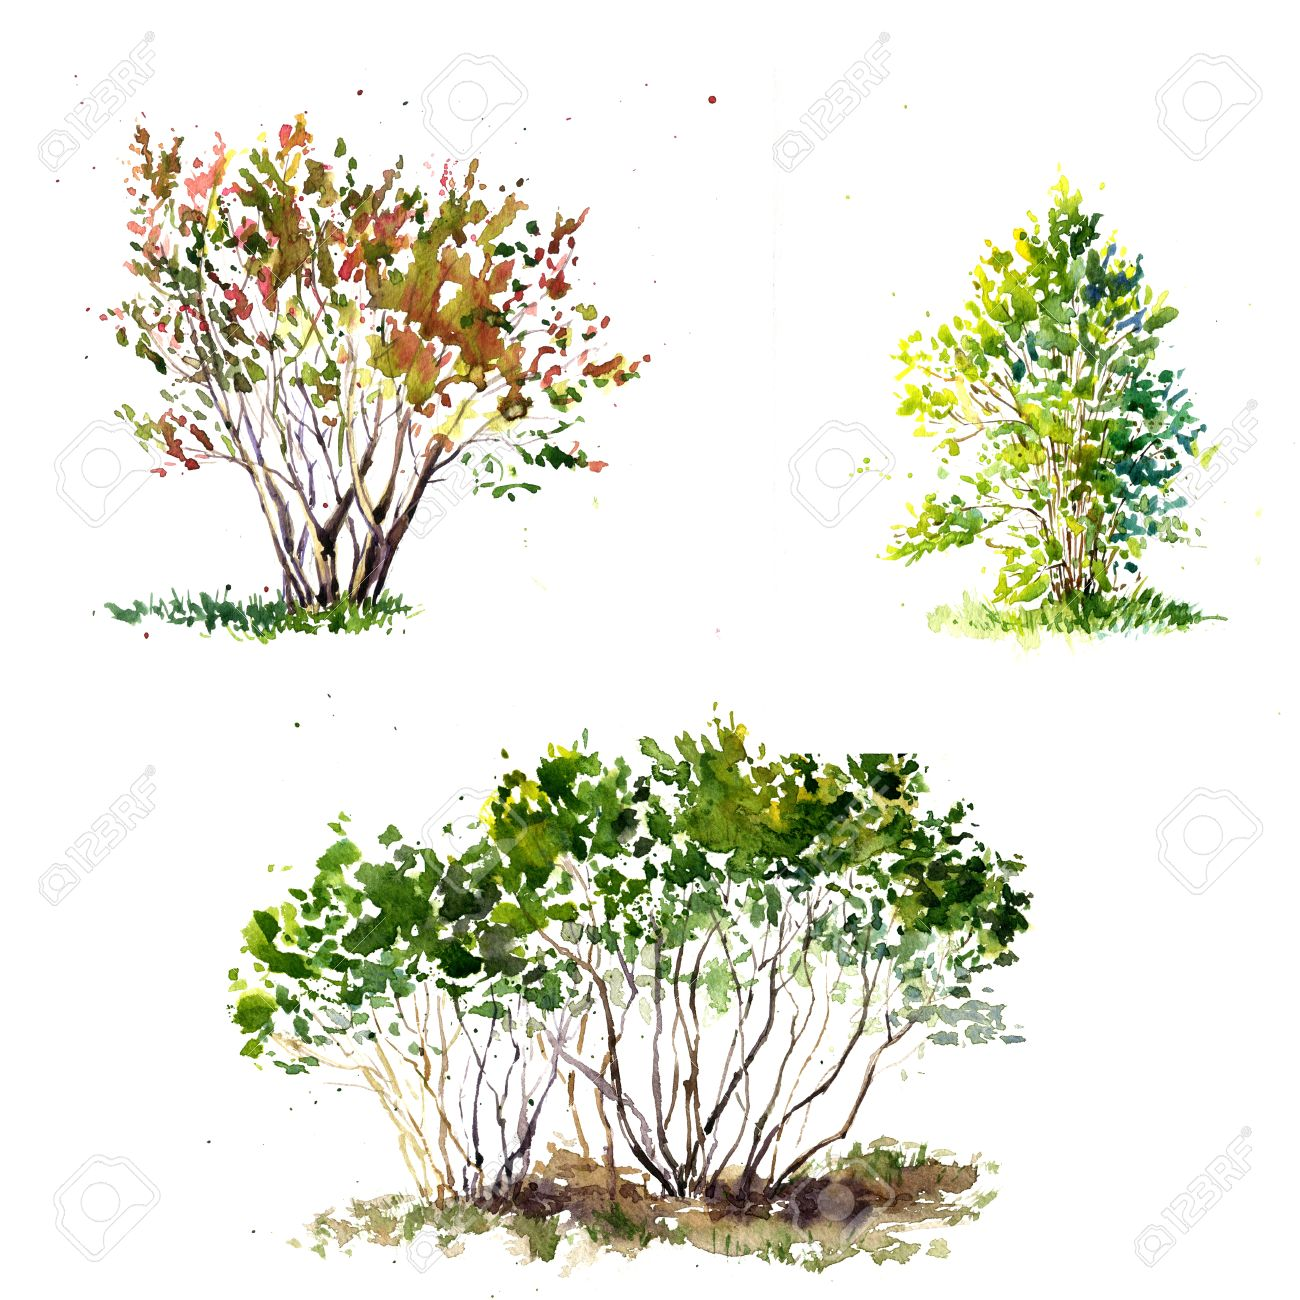 Set Of Green Bushes Drawing By Watercolor, Aquarelle Sketch Of ... for Tree Drawing With Watercolor  539wja